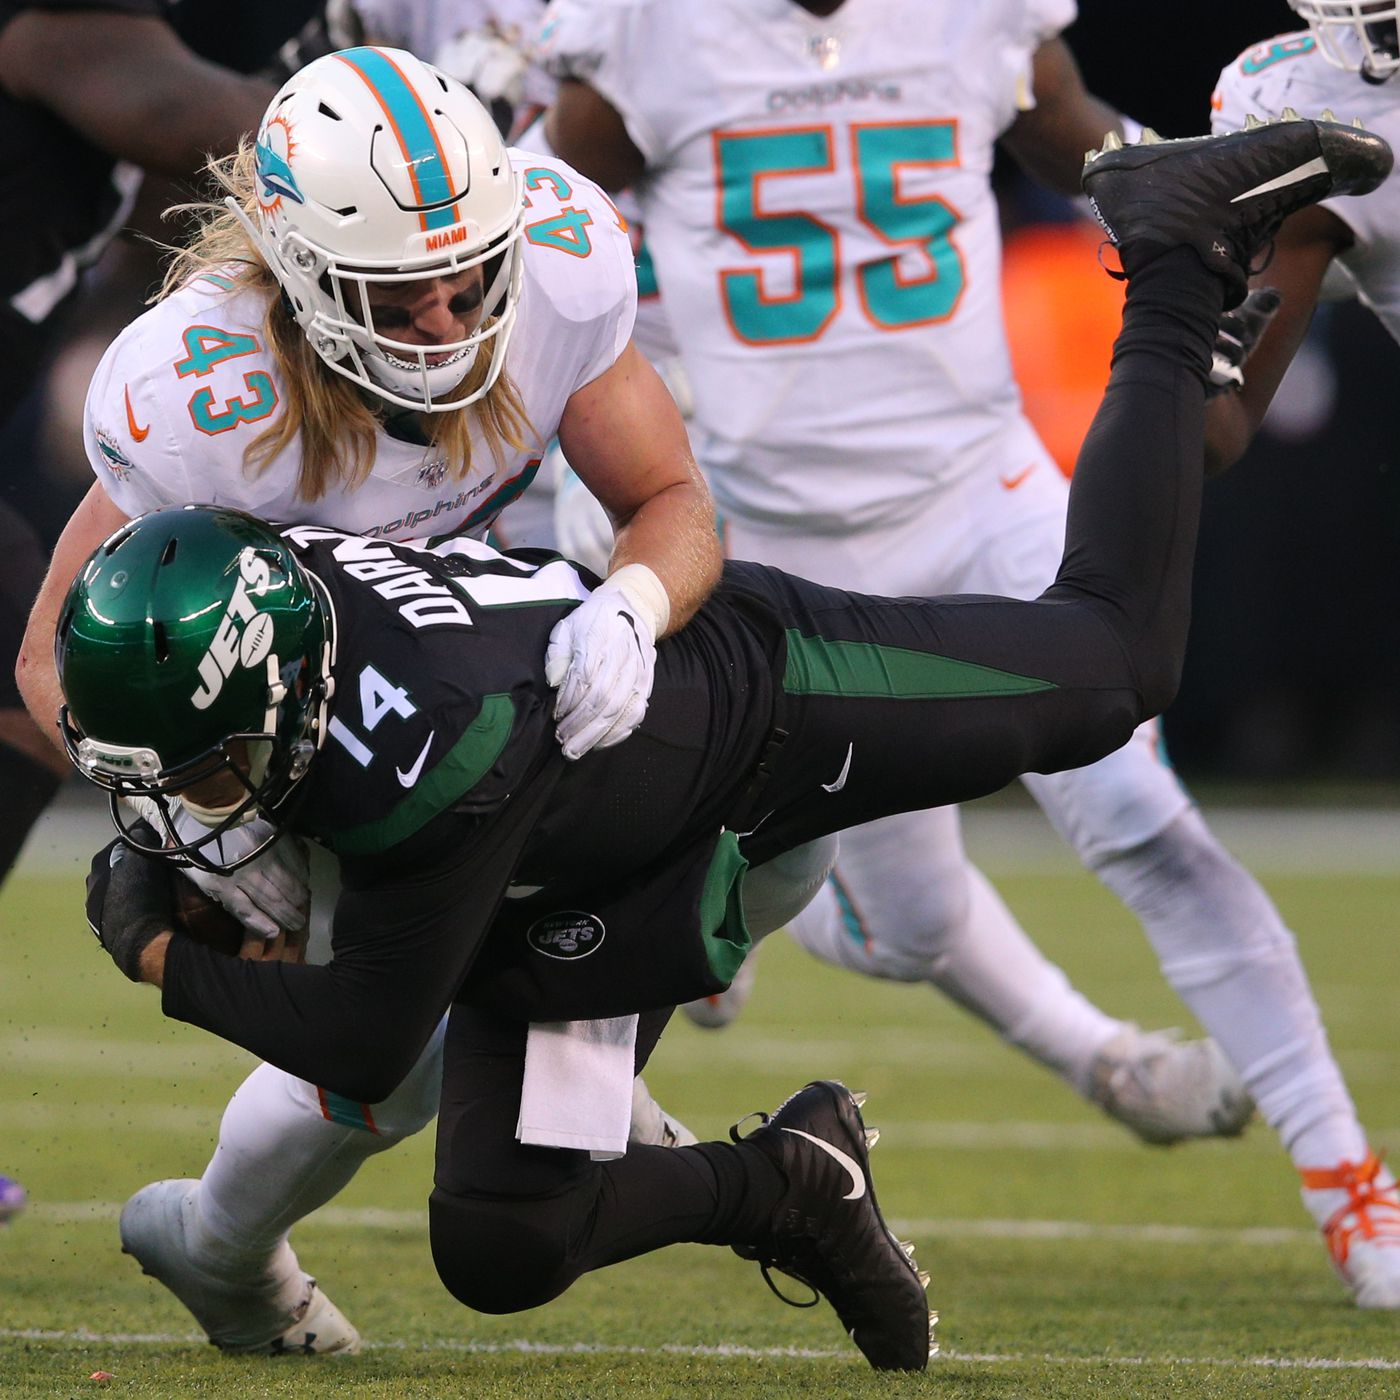 Miami S 2020 Schedule Features Something The Nfl Hasn T Seen Since 1991 The Phinsider